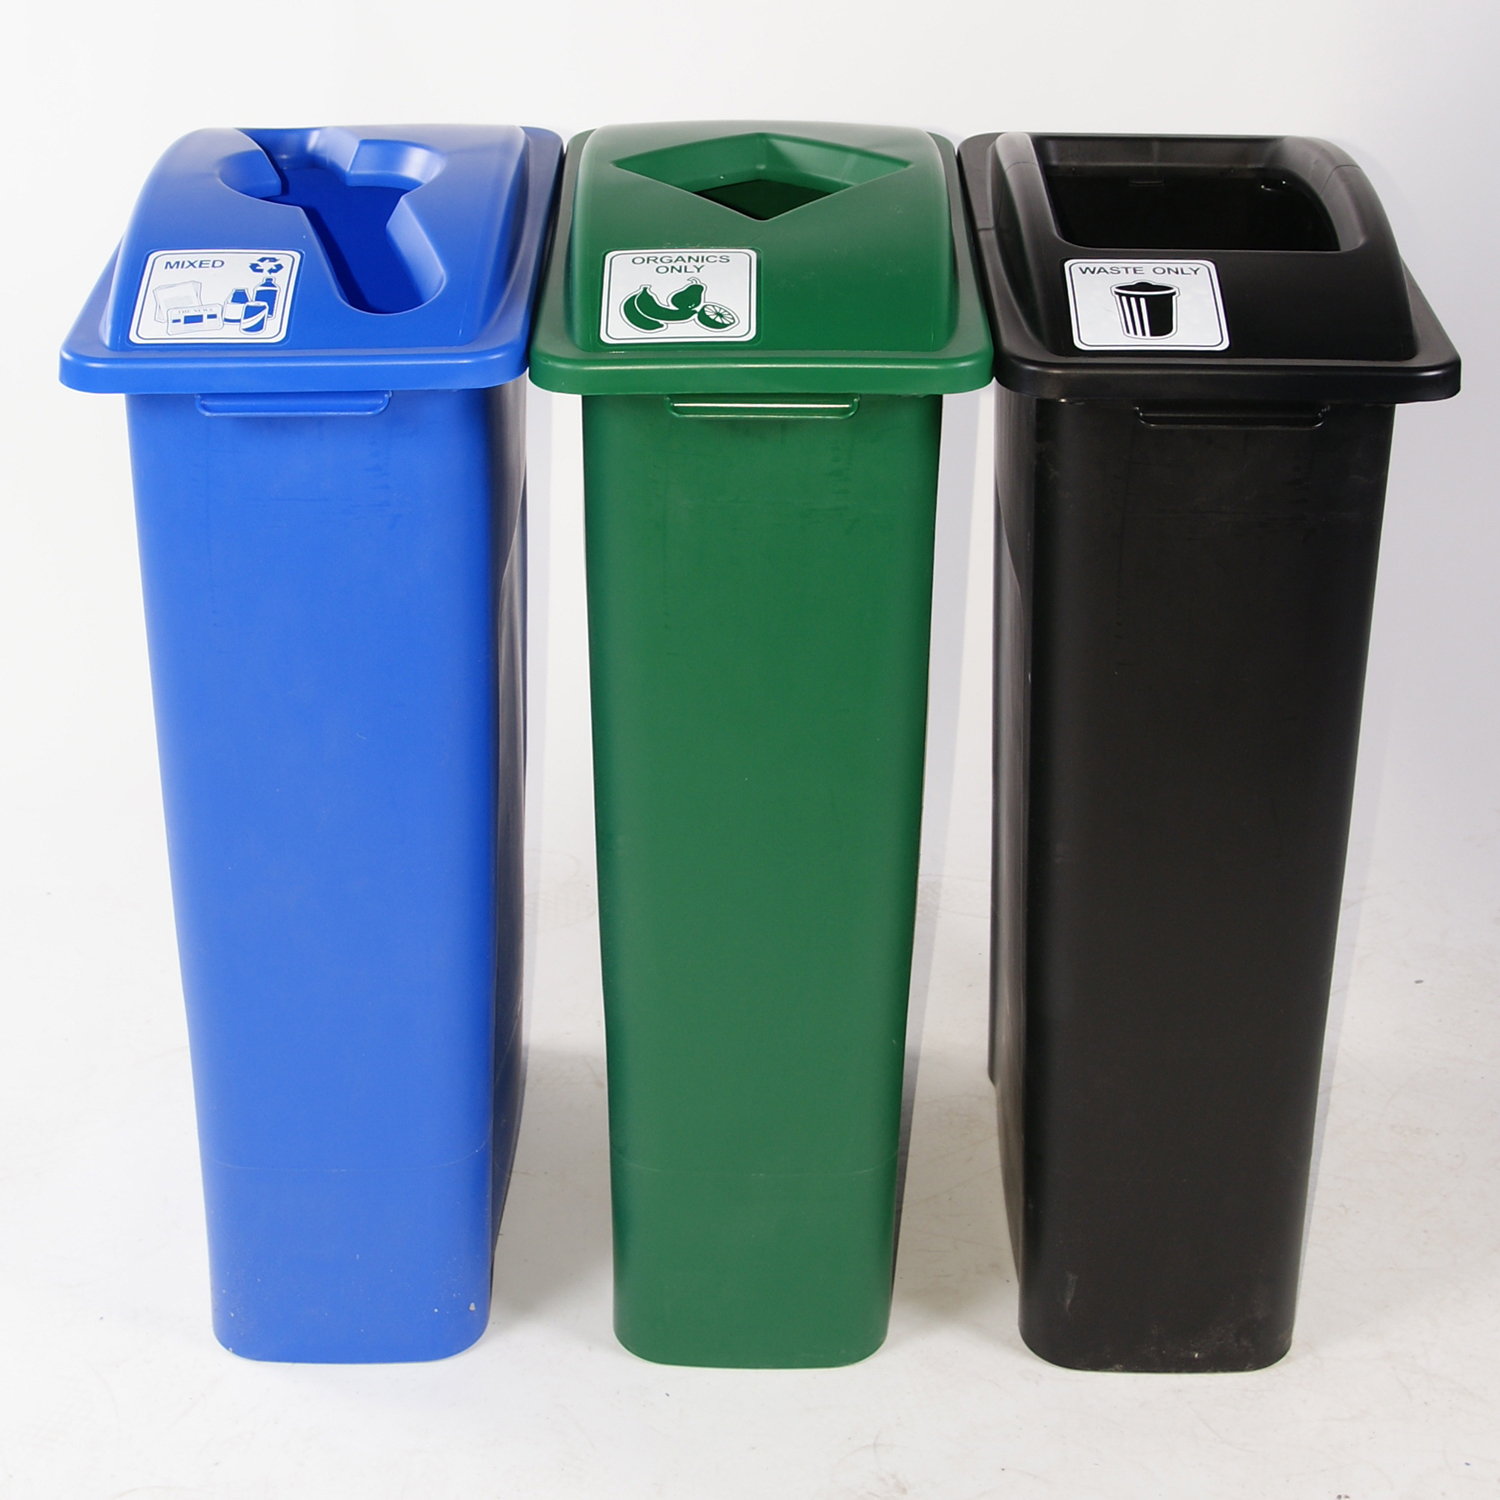 recycle bins Trash cans & recycling bins \ recycling bins trash cans & recycling bins - recycling bins featured product rubbermaid on flickr rubbermaid.